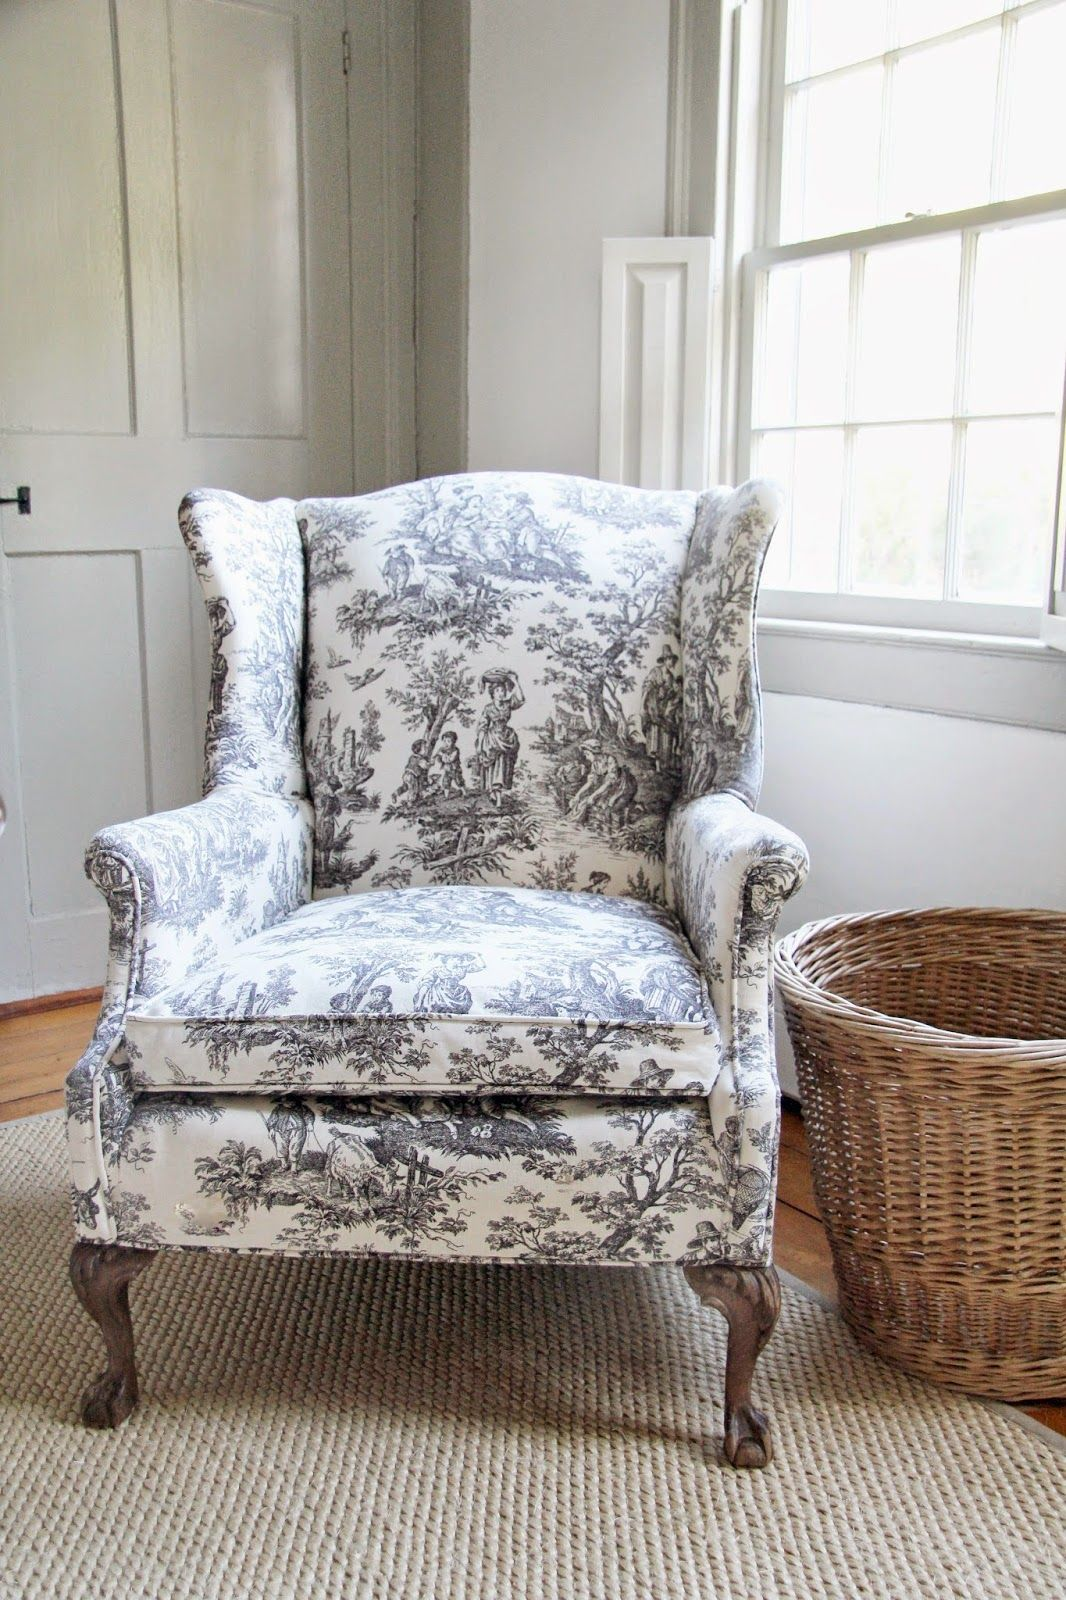 Wing Back Chairs A Country Farmhouse Furniture Upholstered Chairs Furnishings